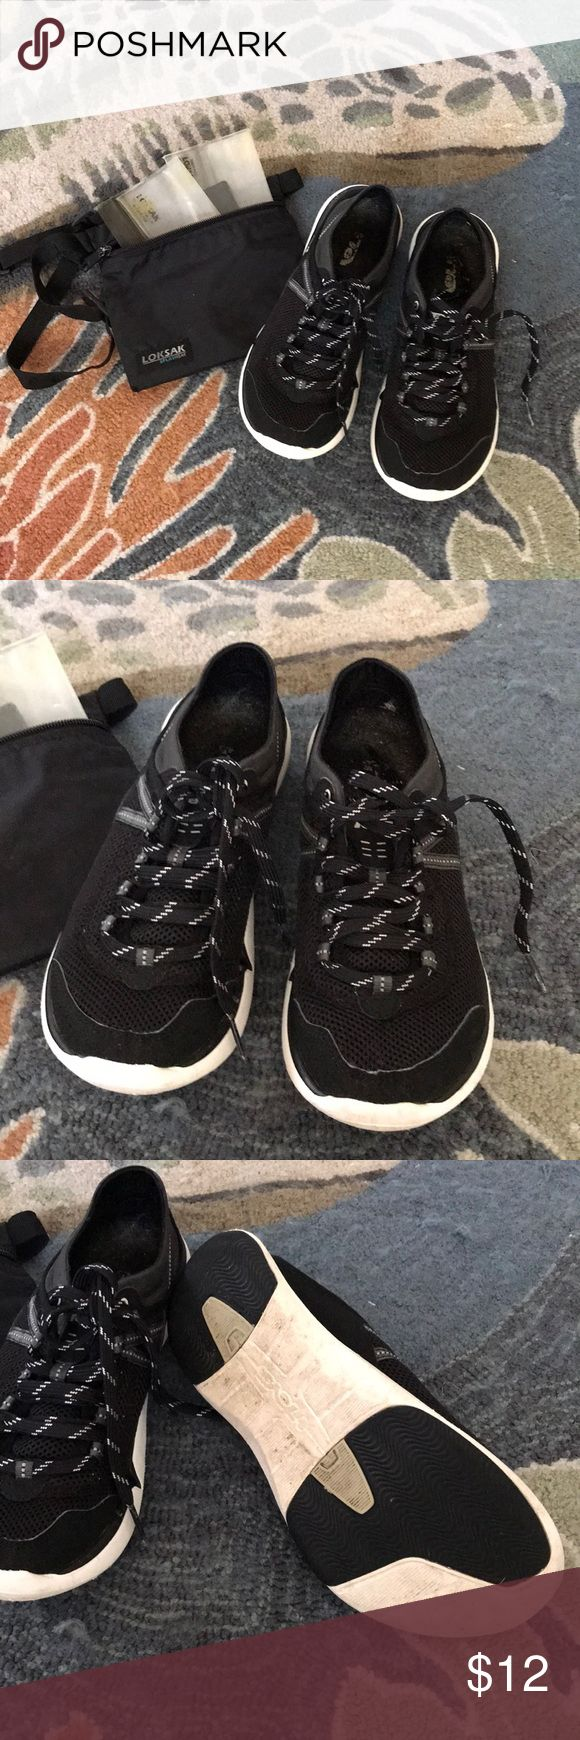 Teva Water Shoes with pouch Teva Water Shoes with pouch and waterproof protection. Shoes have been gently worn. Good for many more miles of kicking through the water! Teva Shoes Athletic Shoes